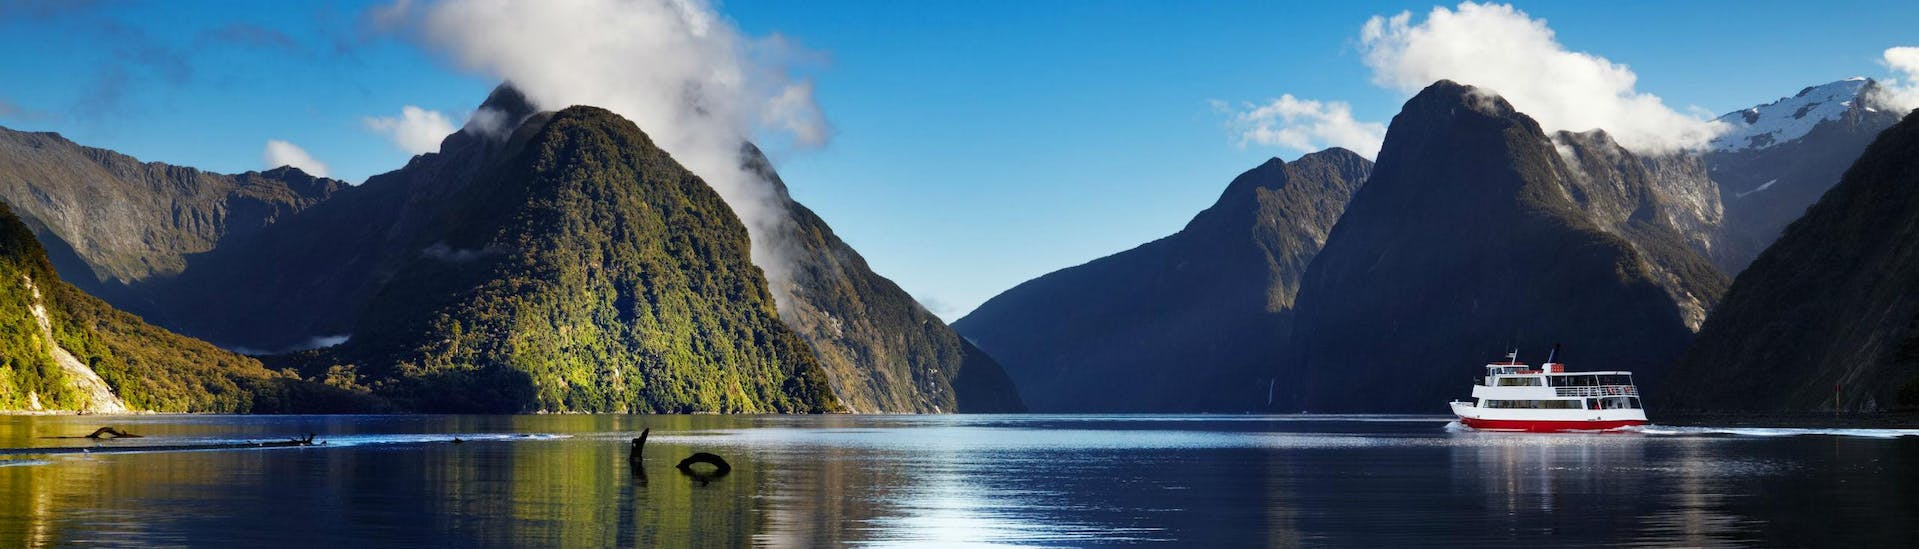 A boat trip in Milford Sound is one of the highlights of many holiday-makers' visit to New Zealand.